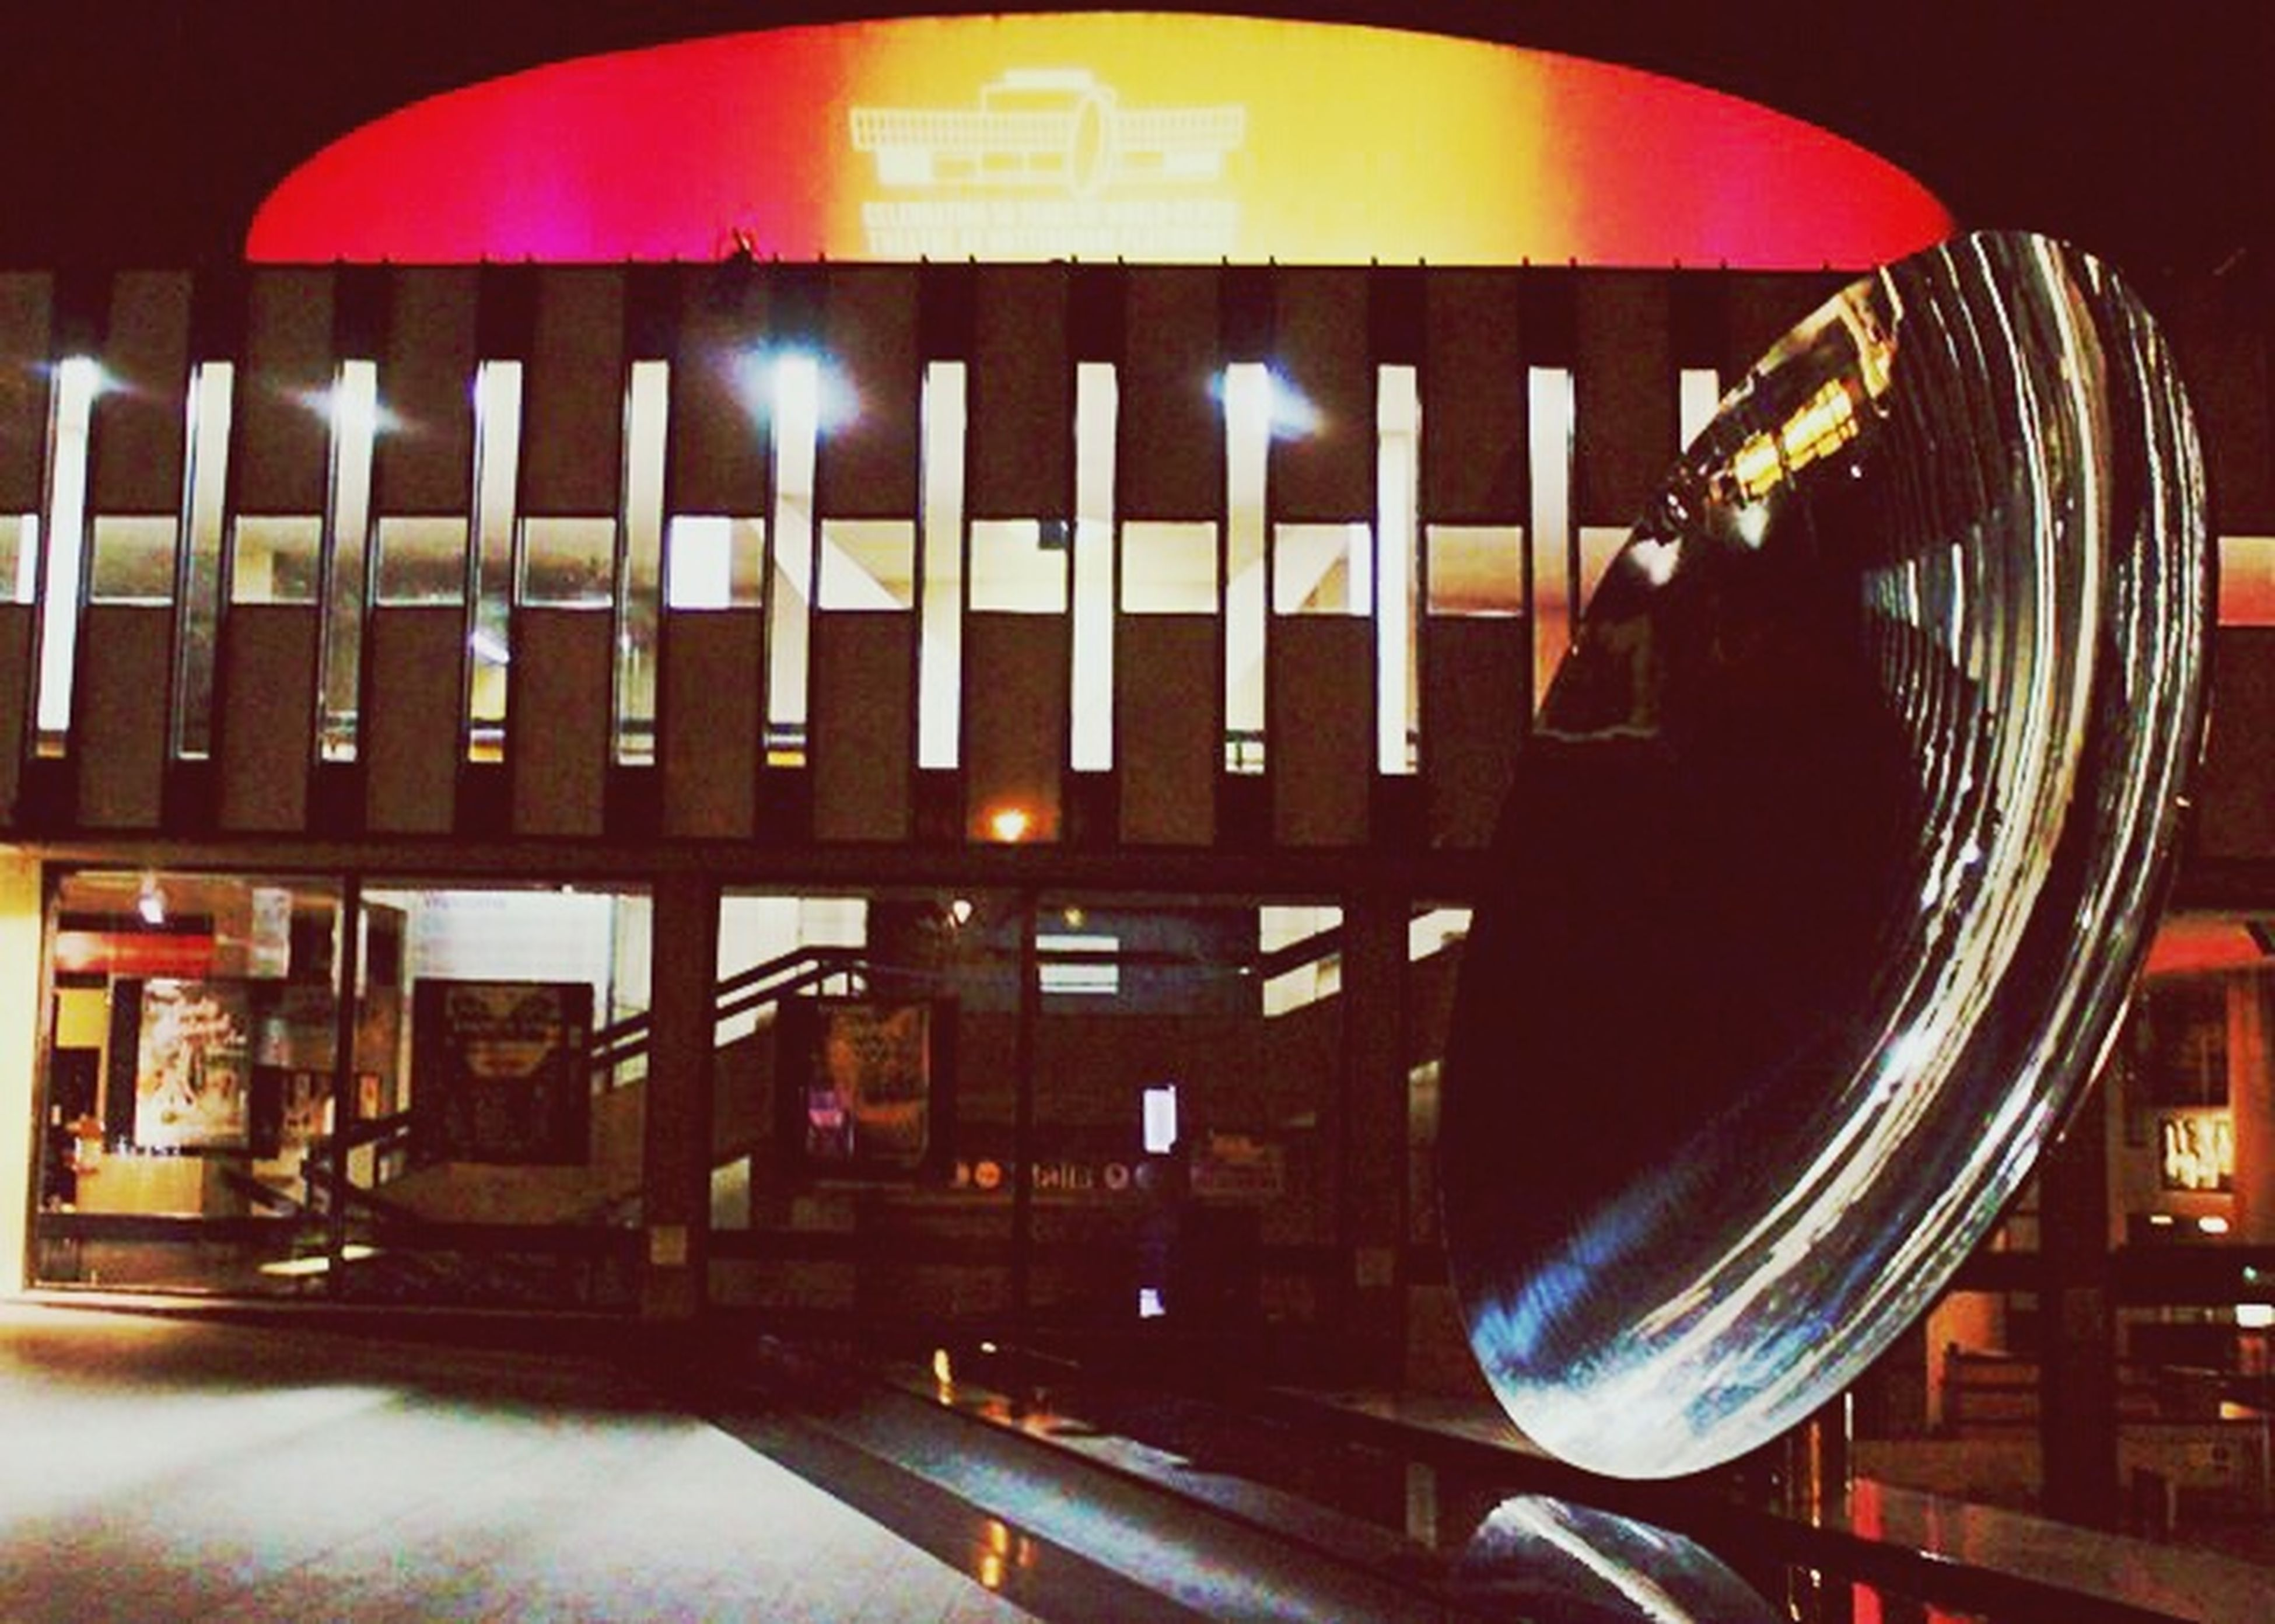 illuminated, night, architecture, built structure, building exterior, city, indoors, transportation, long exposure, incidental people, architectural column, arts culture and entertainment, modern, red, railing, blurred motion, lighting equipment, travel, speed, no people